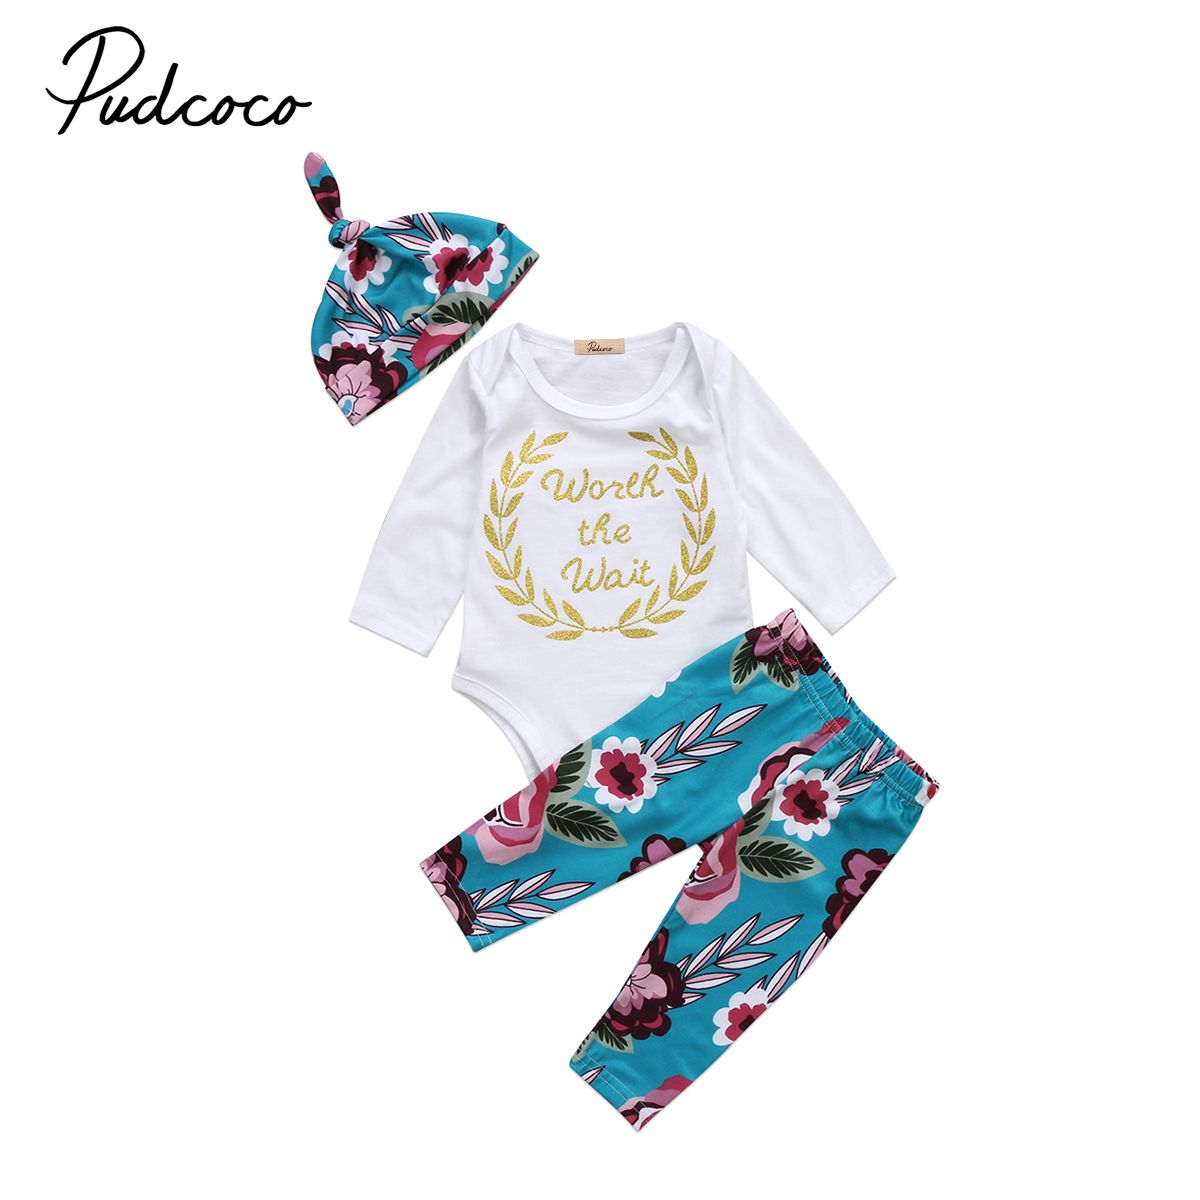 7879598125c5 Pudcoco 3PCS Winter Newborn Toddler Baby Boy Girl Bodysuits Tops ...